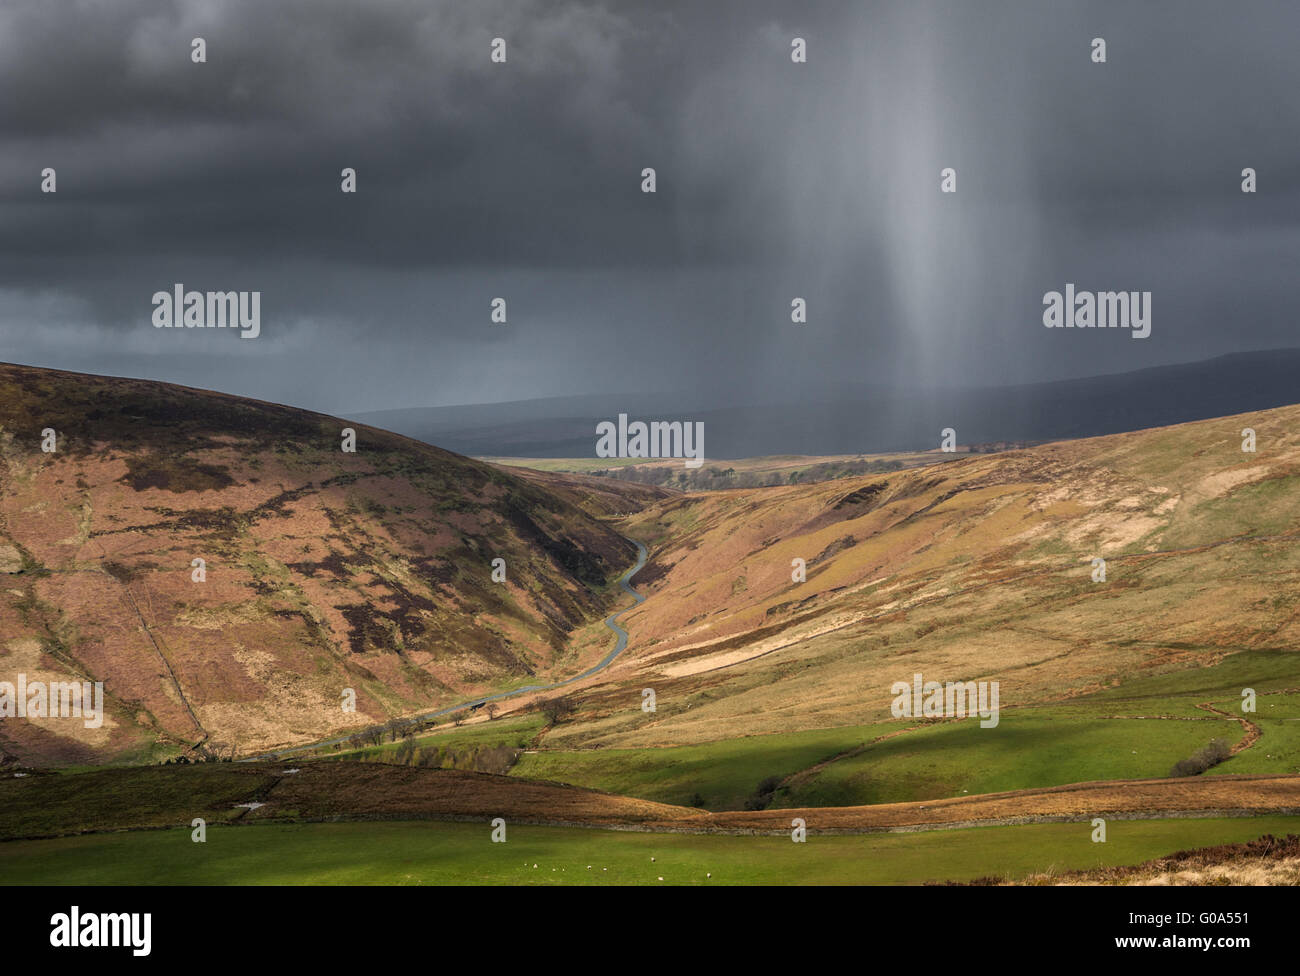 A Squall over The Trough Of Bowland in Lancashire - Stock Image